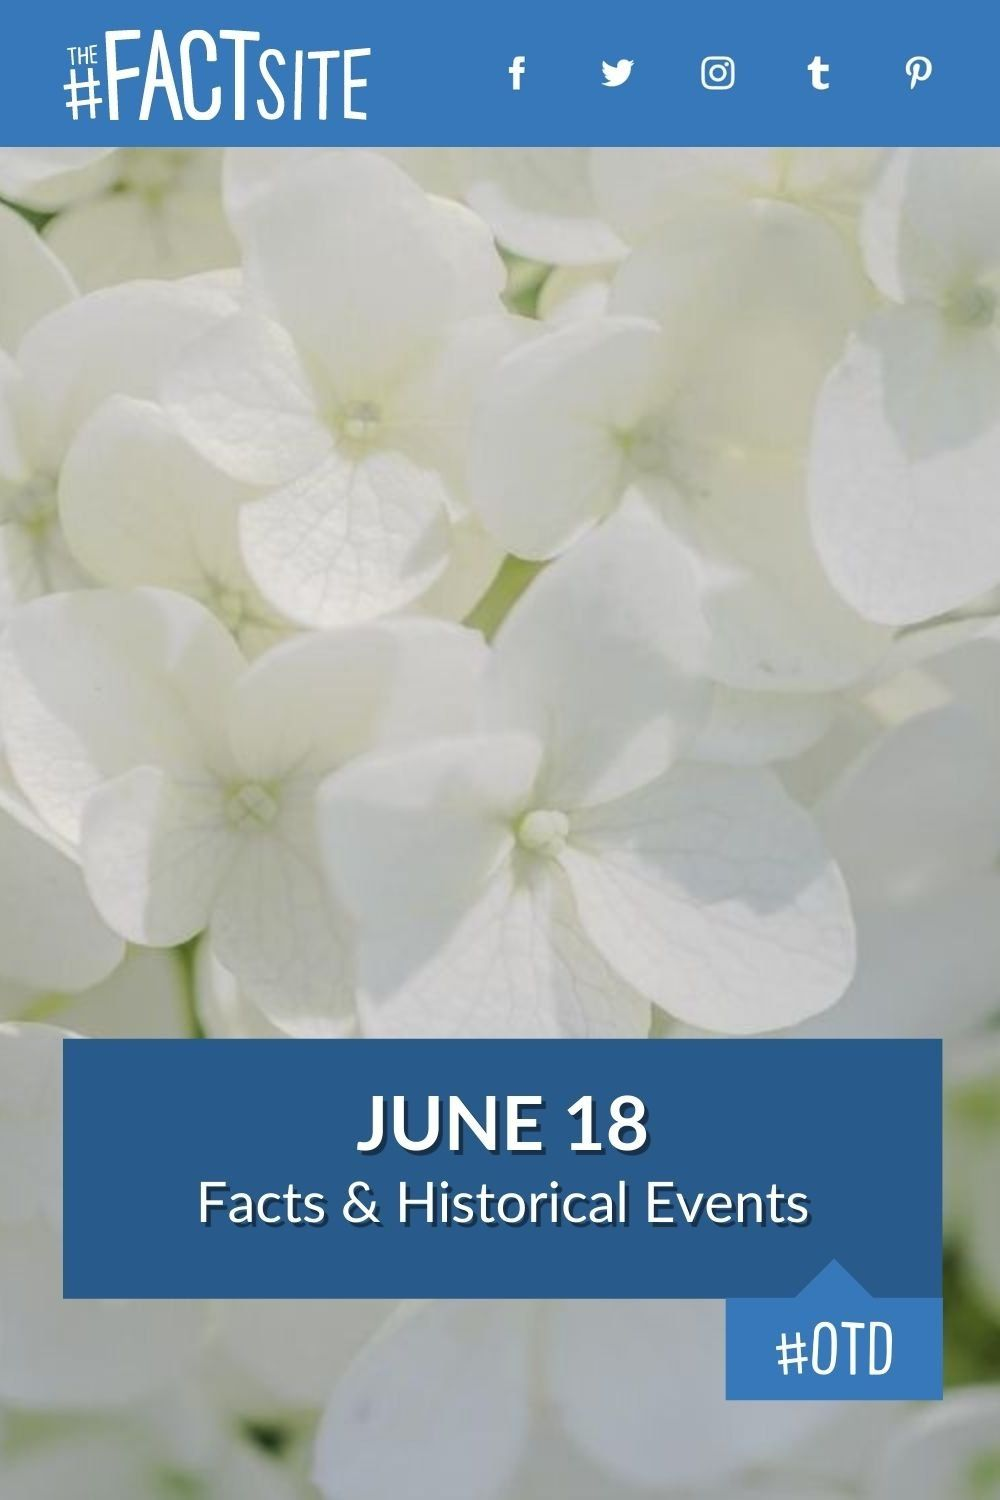 Facts & Historic Events That Happened on June 18